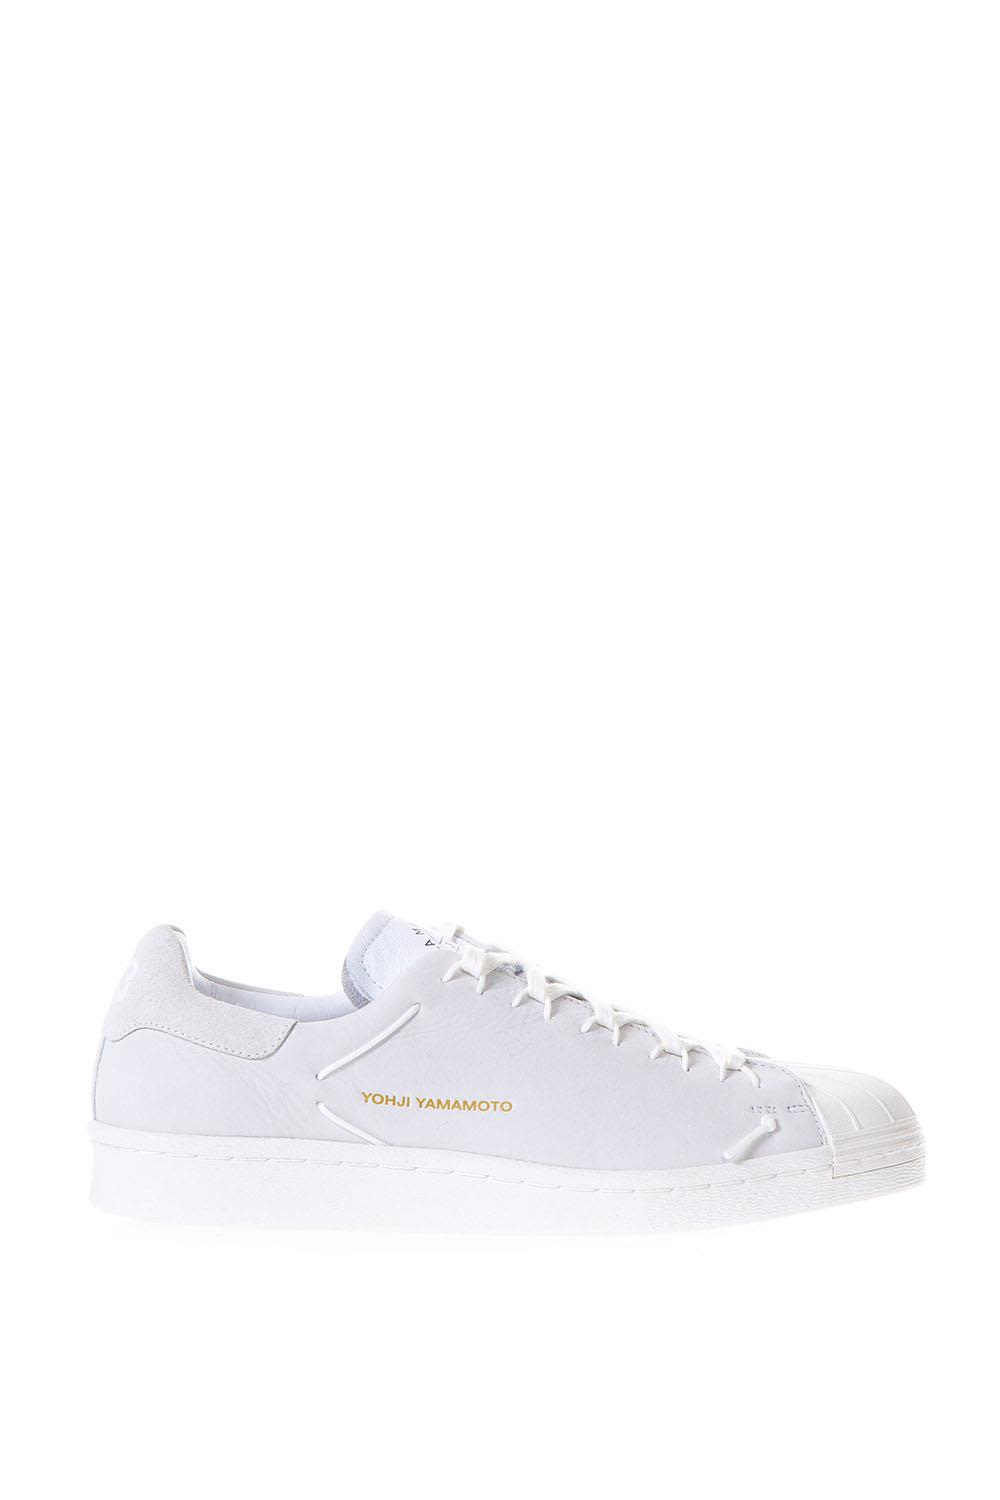 y-3 -  Knot White Leather Sneakers